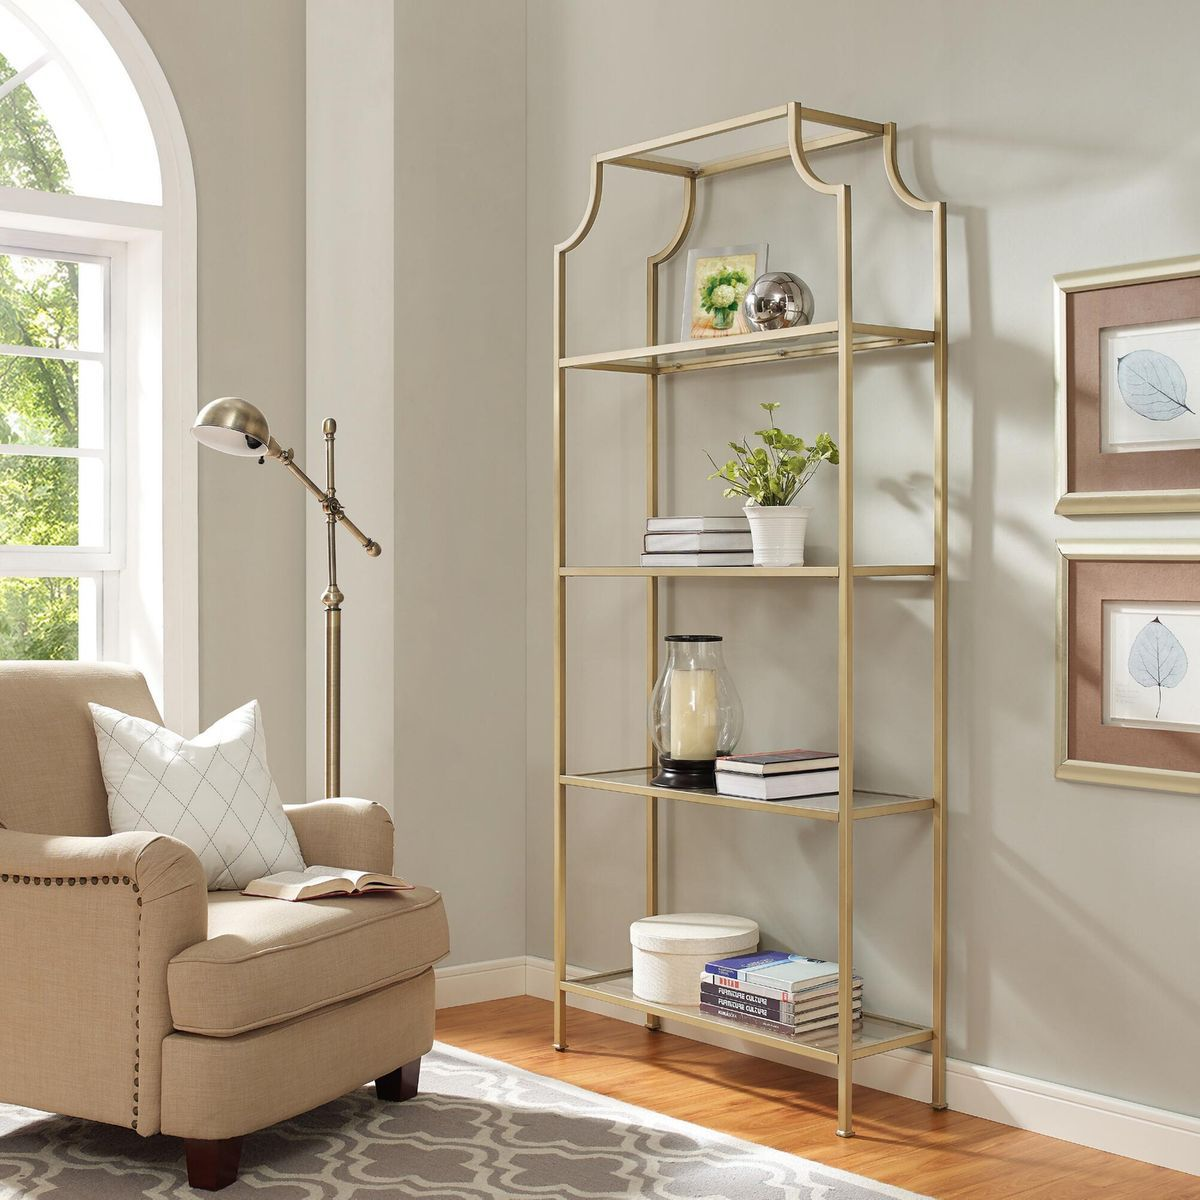 Room with beige armchair and gold-frame shelf.